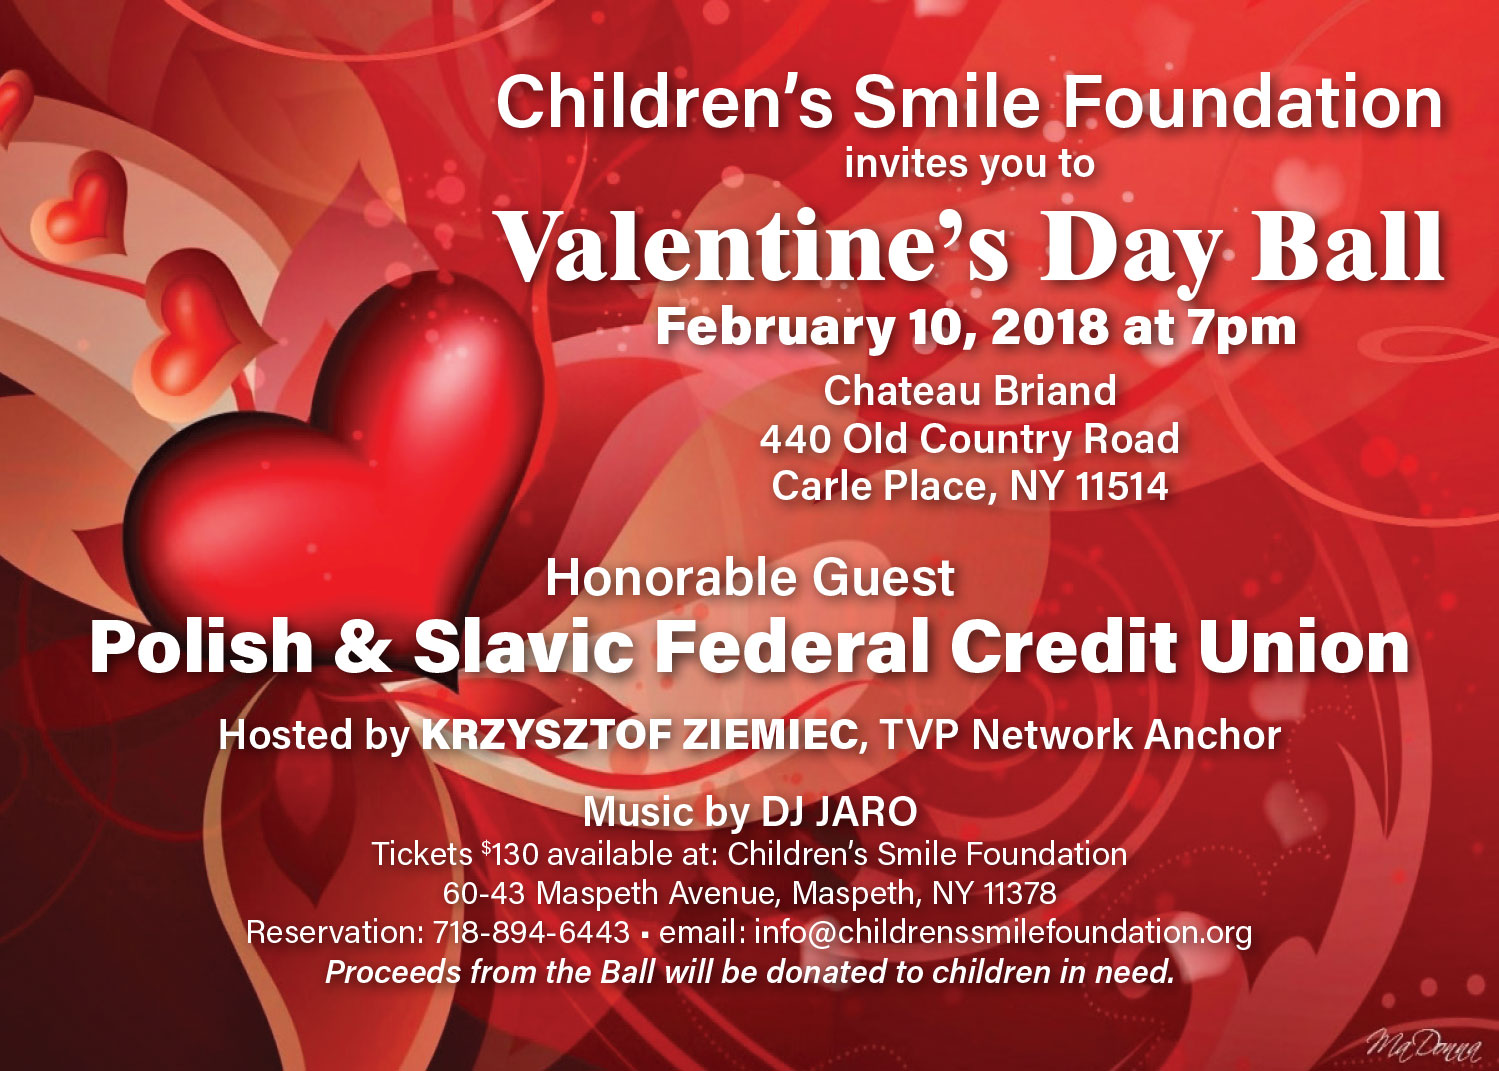 Valentine's Ball at Chateau Briand